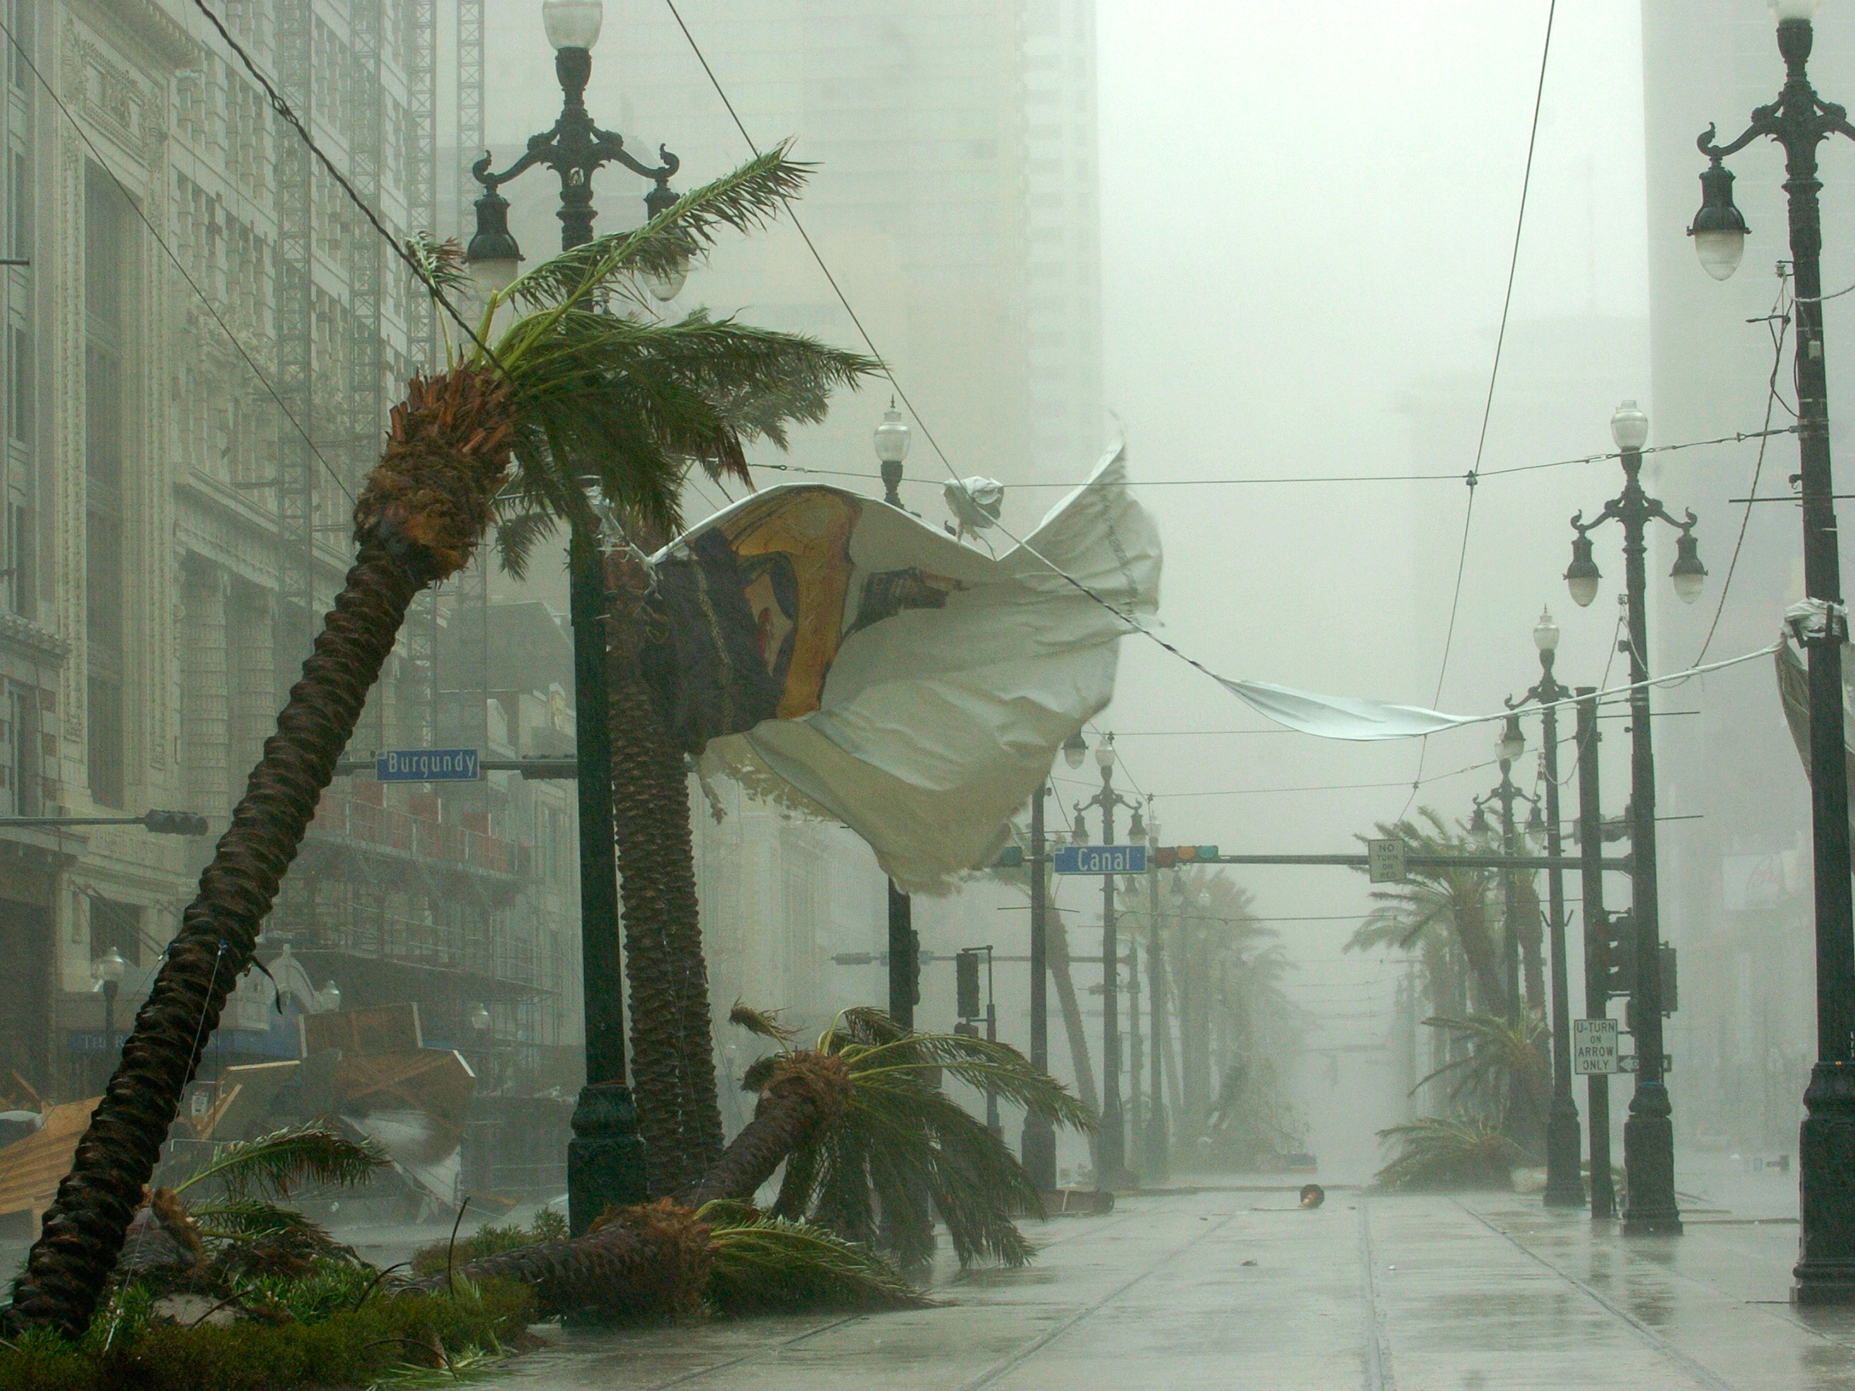 Palm trees bend and banners rip on Canal Street as Hurricane Katrina blows through New Orleans on Aug. 29, 2005 — 10 years ago Saturday.John Burnett, standing in knee-deep water in front of the Superdome shortly after Hurricane Katrina had passed.The Kids Quest building sits in the middle of the Route 90 next to the Grand Casino in Gulfport, Miss., on the day after the storm. Both buildings were wrecked from the high winds and waves of Hurricane Katrina.Palm trees bend and banners rip on Canal Street as Hurricane Katrina blows through New Orleans on Aug. 29, 2005 — 10 years ago Saturday.John Burnett, standing in knee-deep water in front of the Superdome shortly after Hurricane Katrina had passed.The Kids Quest building sits in the middle of the Route 90 next to the Grand Casino in Gulfport, Miss., on the day after the storm. Both buildings were wrecked from the high winds and waves of Hurricane Katrina.Palm trees bend and banners rip on Canal Street as Hurricane Katrina blows through New Orleans on Aug. 29, 2005 — 10 years ago Saturday.John Burnett, standing in knee-deep water in front of the Superdome shortly after Hurricane Katrina had passed.The Kids Quest building sits in the middle of the Route 90 next to the Grand Casino in Gulfport, Miss., on the day after the storm. Both buildings were wrecked from the high winds and waves of Hurricane Katrina.